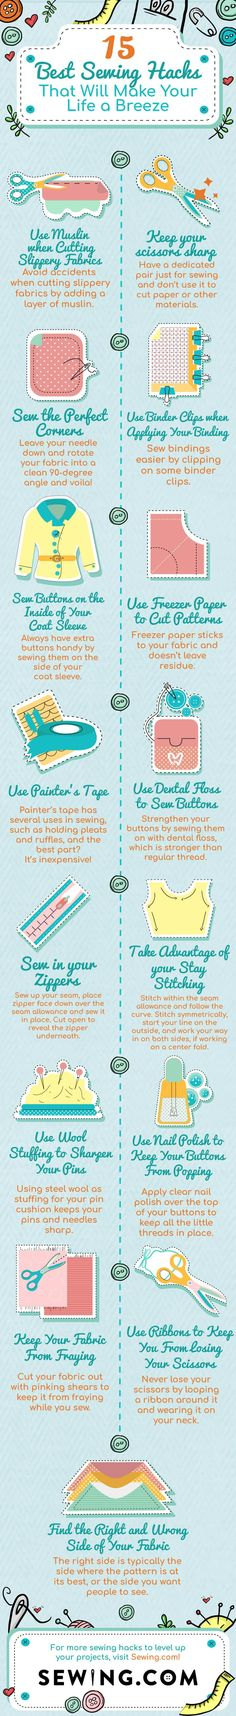 Genius Sewing Hacks to Make Your Life Easier | Best Sewing Hacks That Will Make Your Life a Breeze